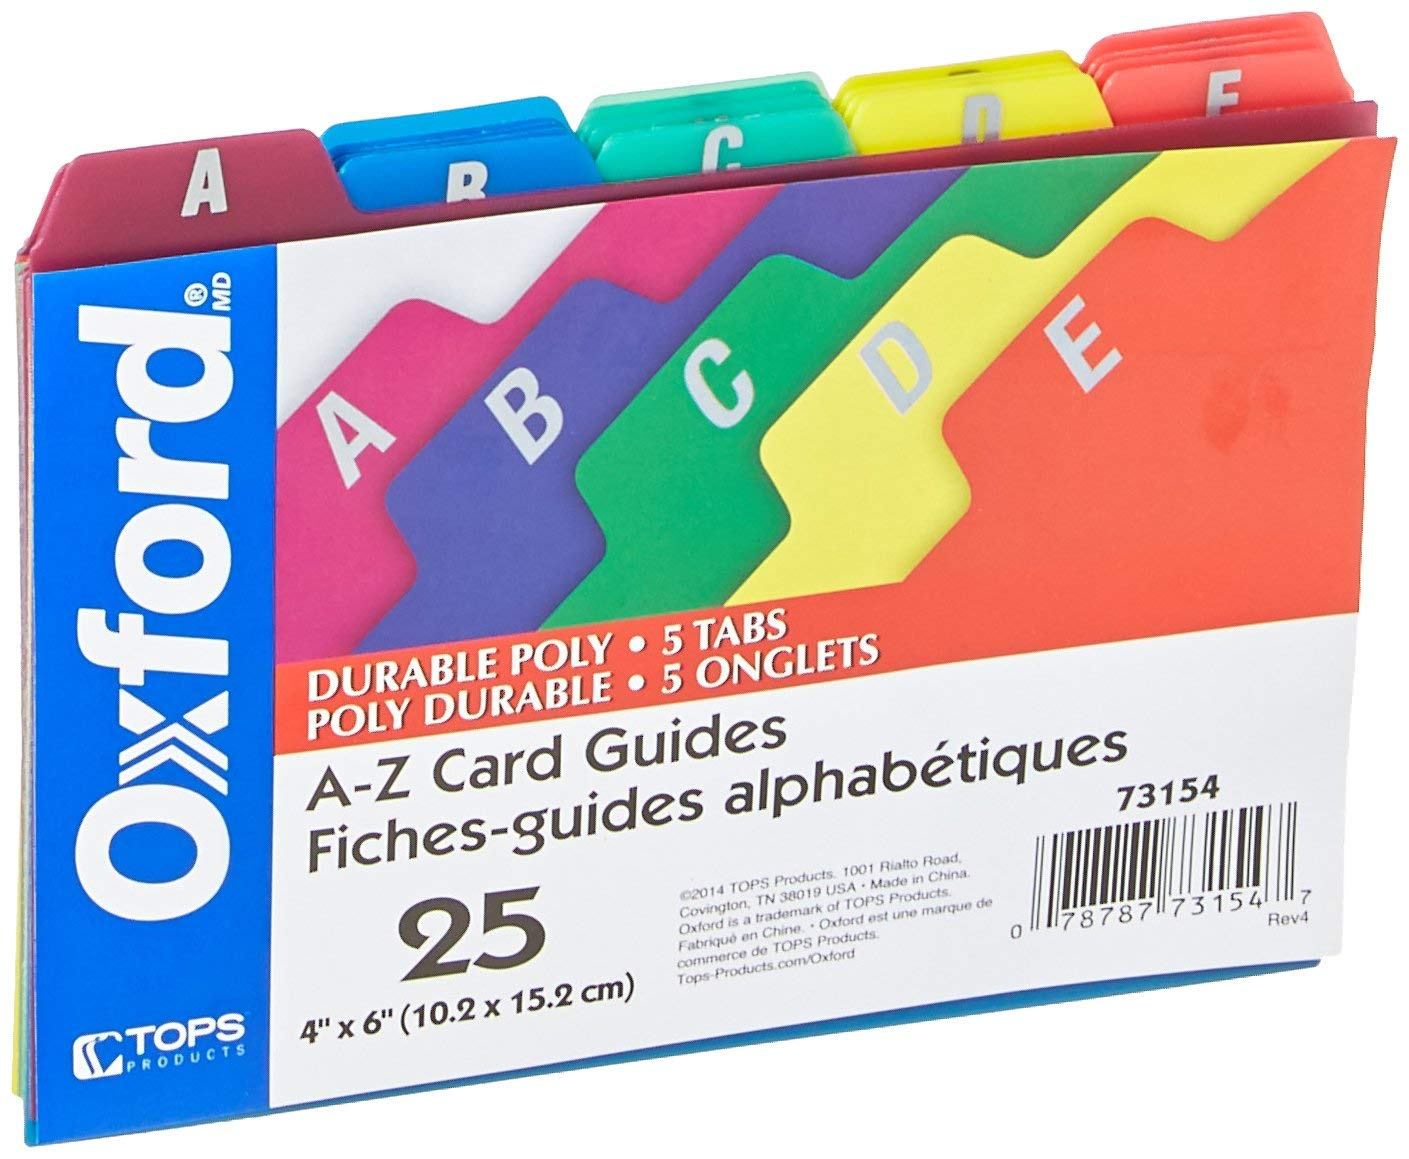 Oxford Poly Index Card Guides, Alphabetical, A-Z, Assorted Colors, 4'' x 6'' Size, 25 Guides per Set (73154) (2 Set) by Oxford (Image #1)